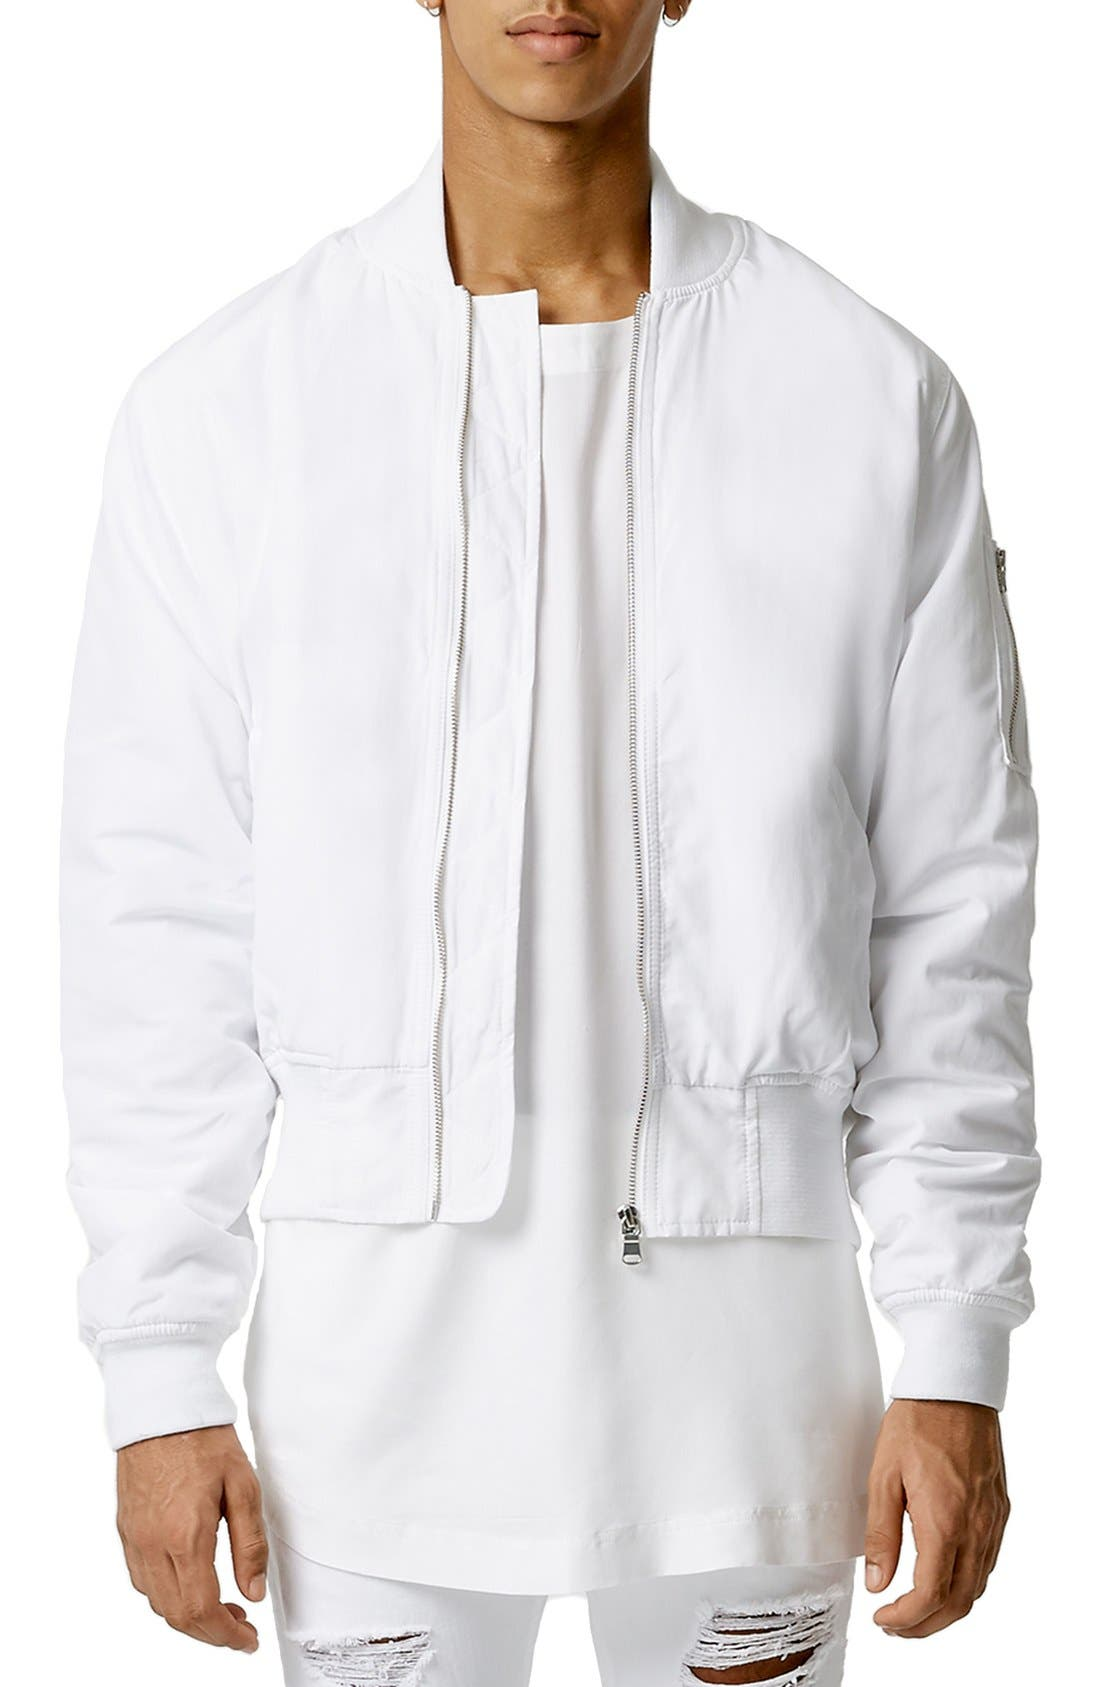 AAA Collection Ruched Back Bomber Jacket,                             Main thumbnail 1, color,                             100